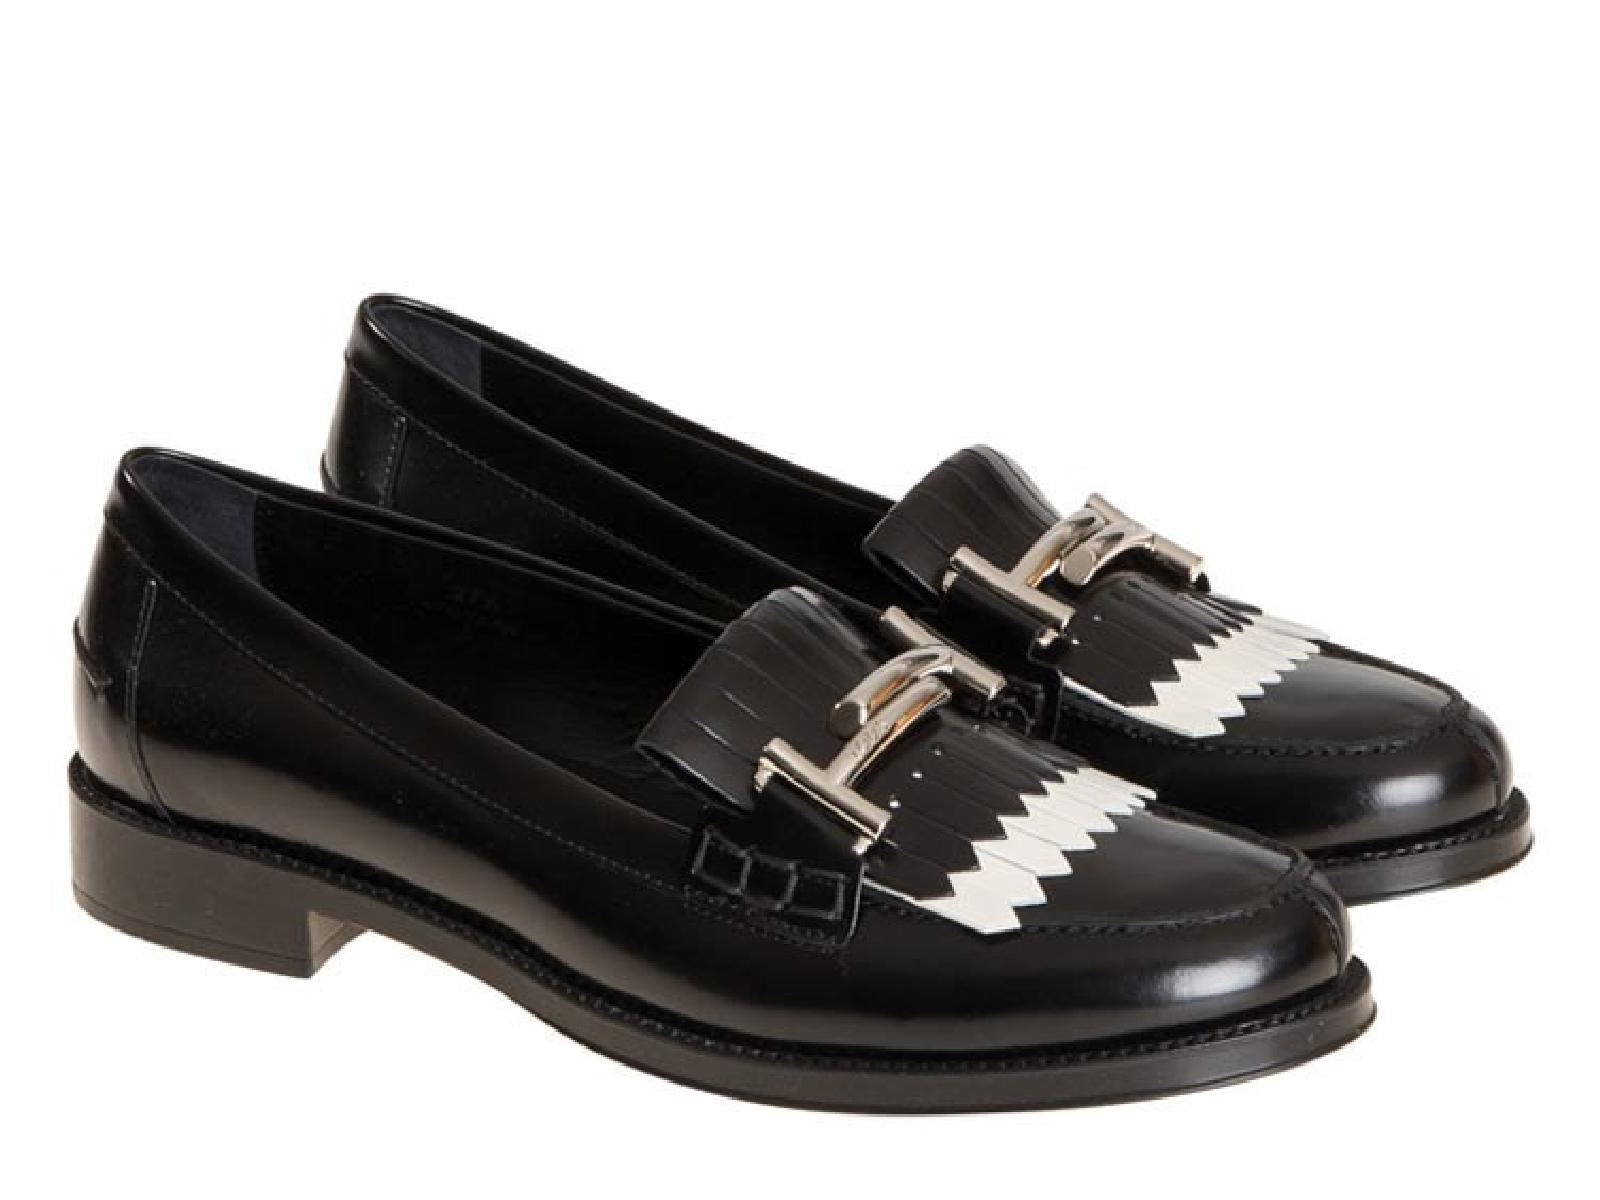 Tod s women s loafers in black shiny leather white fringe – Julicci.com 67d419139b1d7